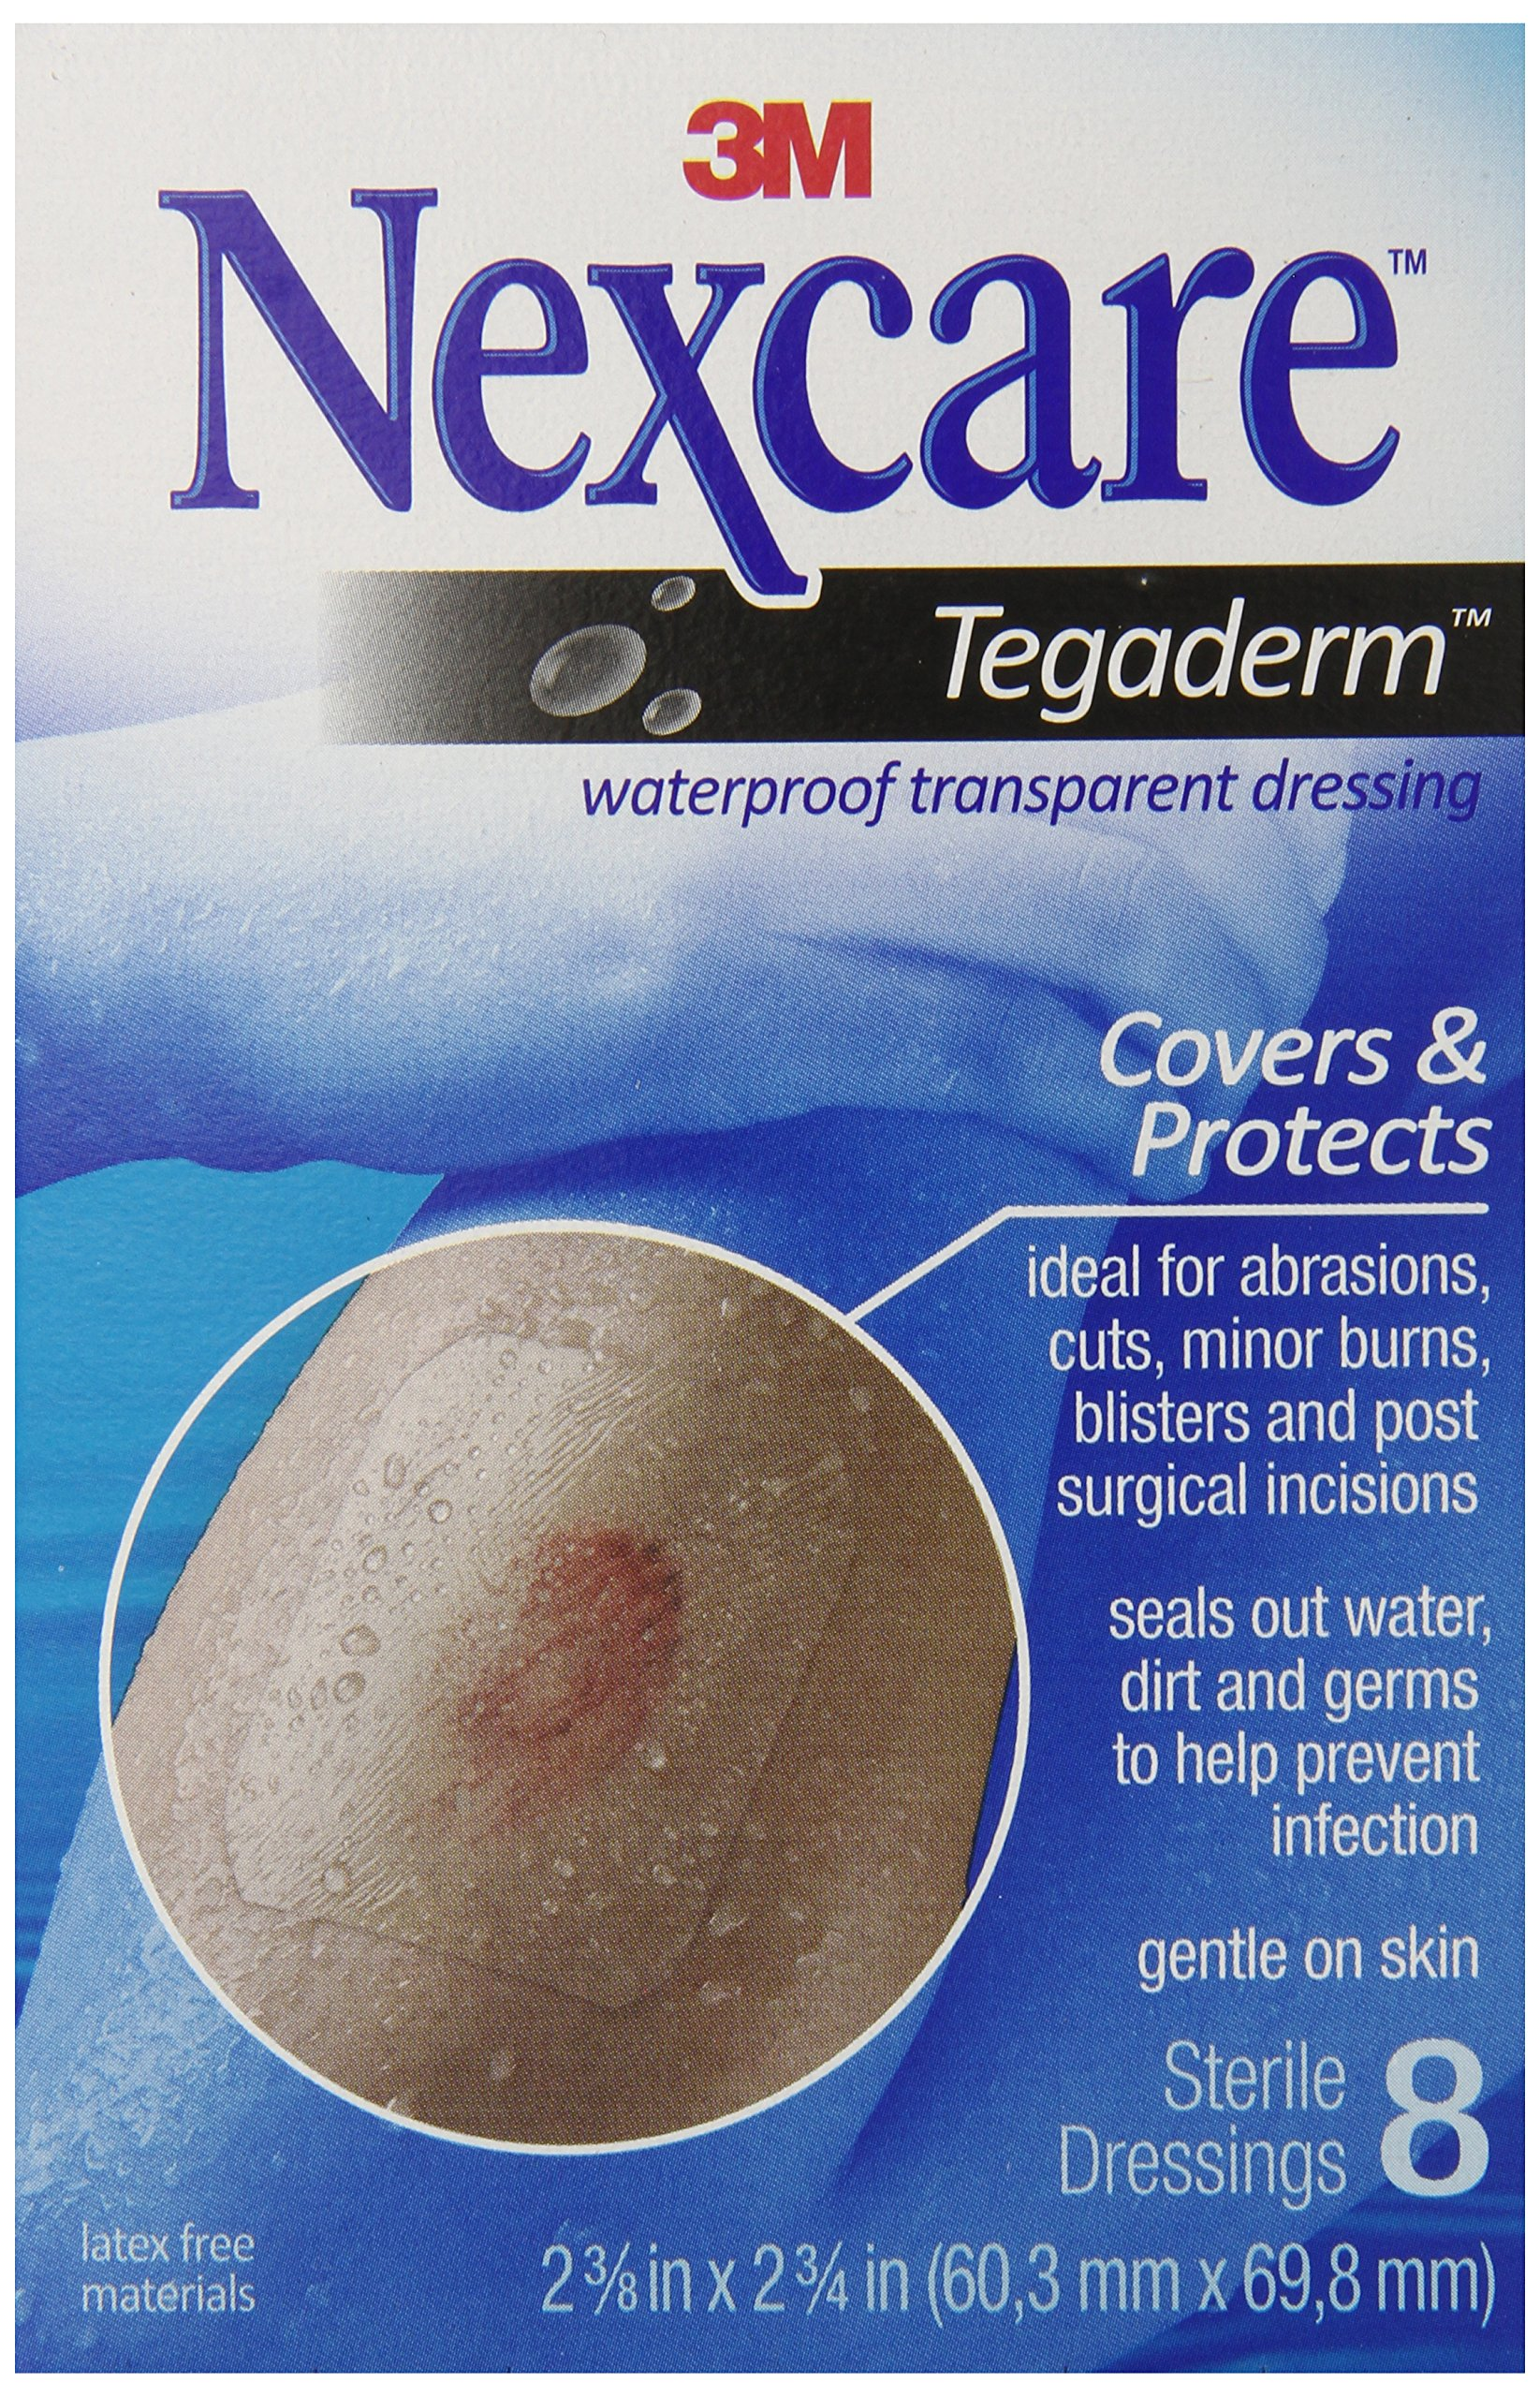 Nexcare Tegaderm Waterproof Transparent Dressing, Flexible and Breathable, Post-Surgical Incisions, 2-3/8-Inches X 2-3/4-Inches, 8 Count